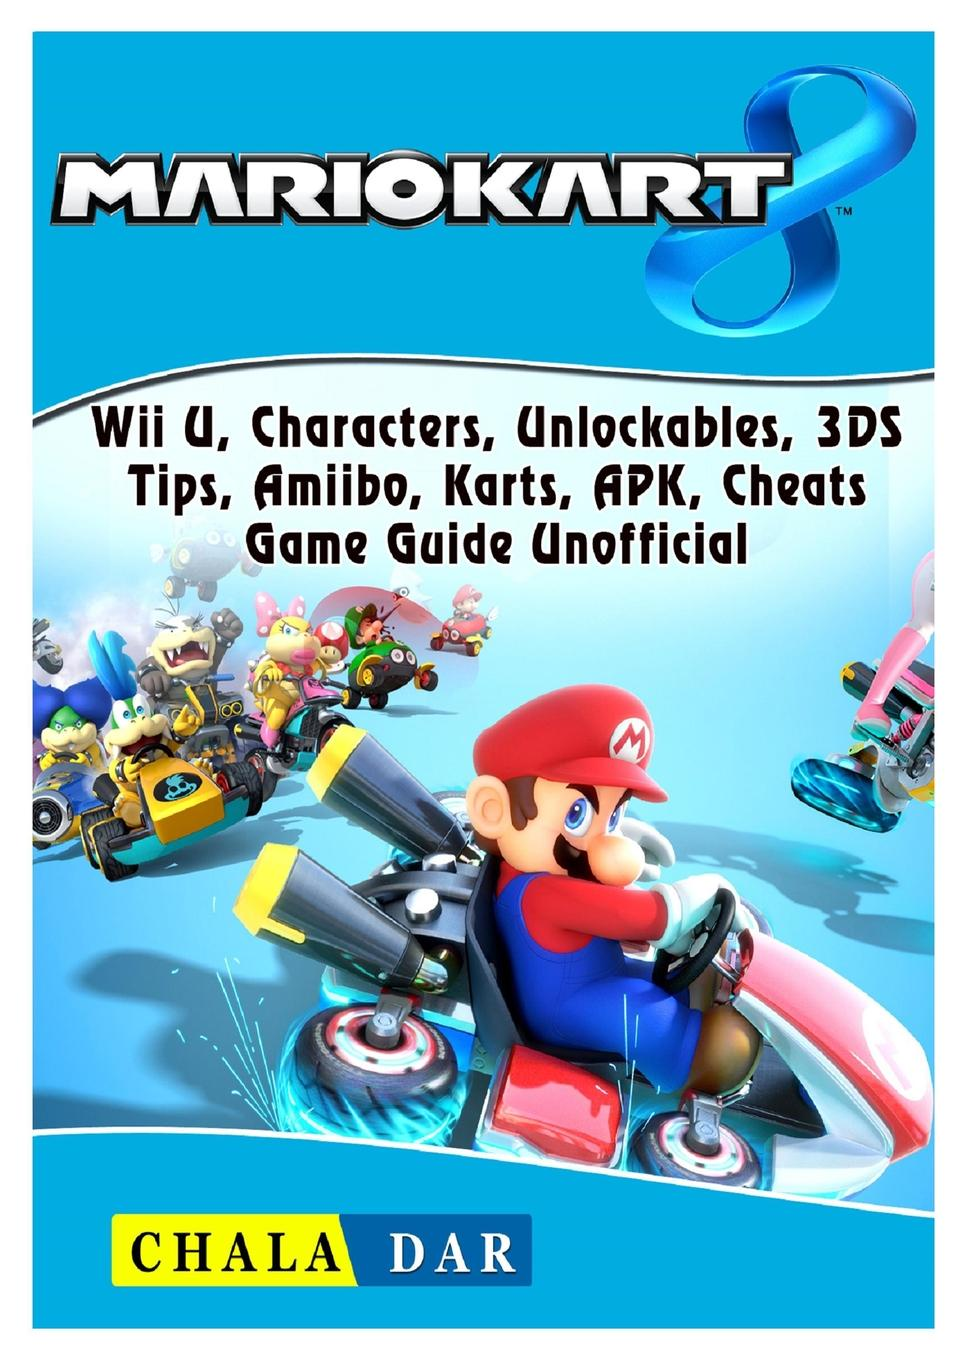 где купить Chala Dar Mario Kart 8, Wii U, Characters, Unlockables, 3DS, Tips, Amiibo, Karts, APK, Cheats, Game Guide Unofficial по лучшей цене